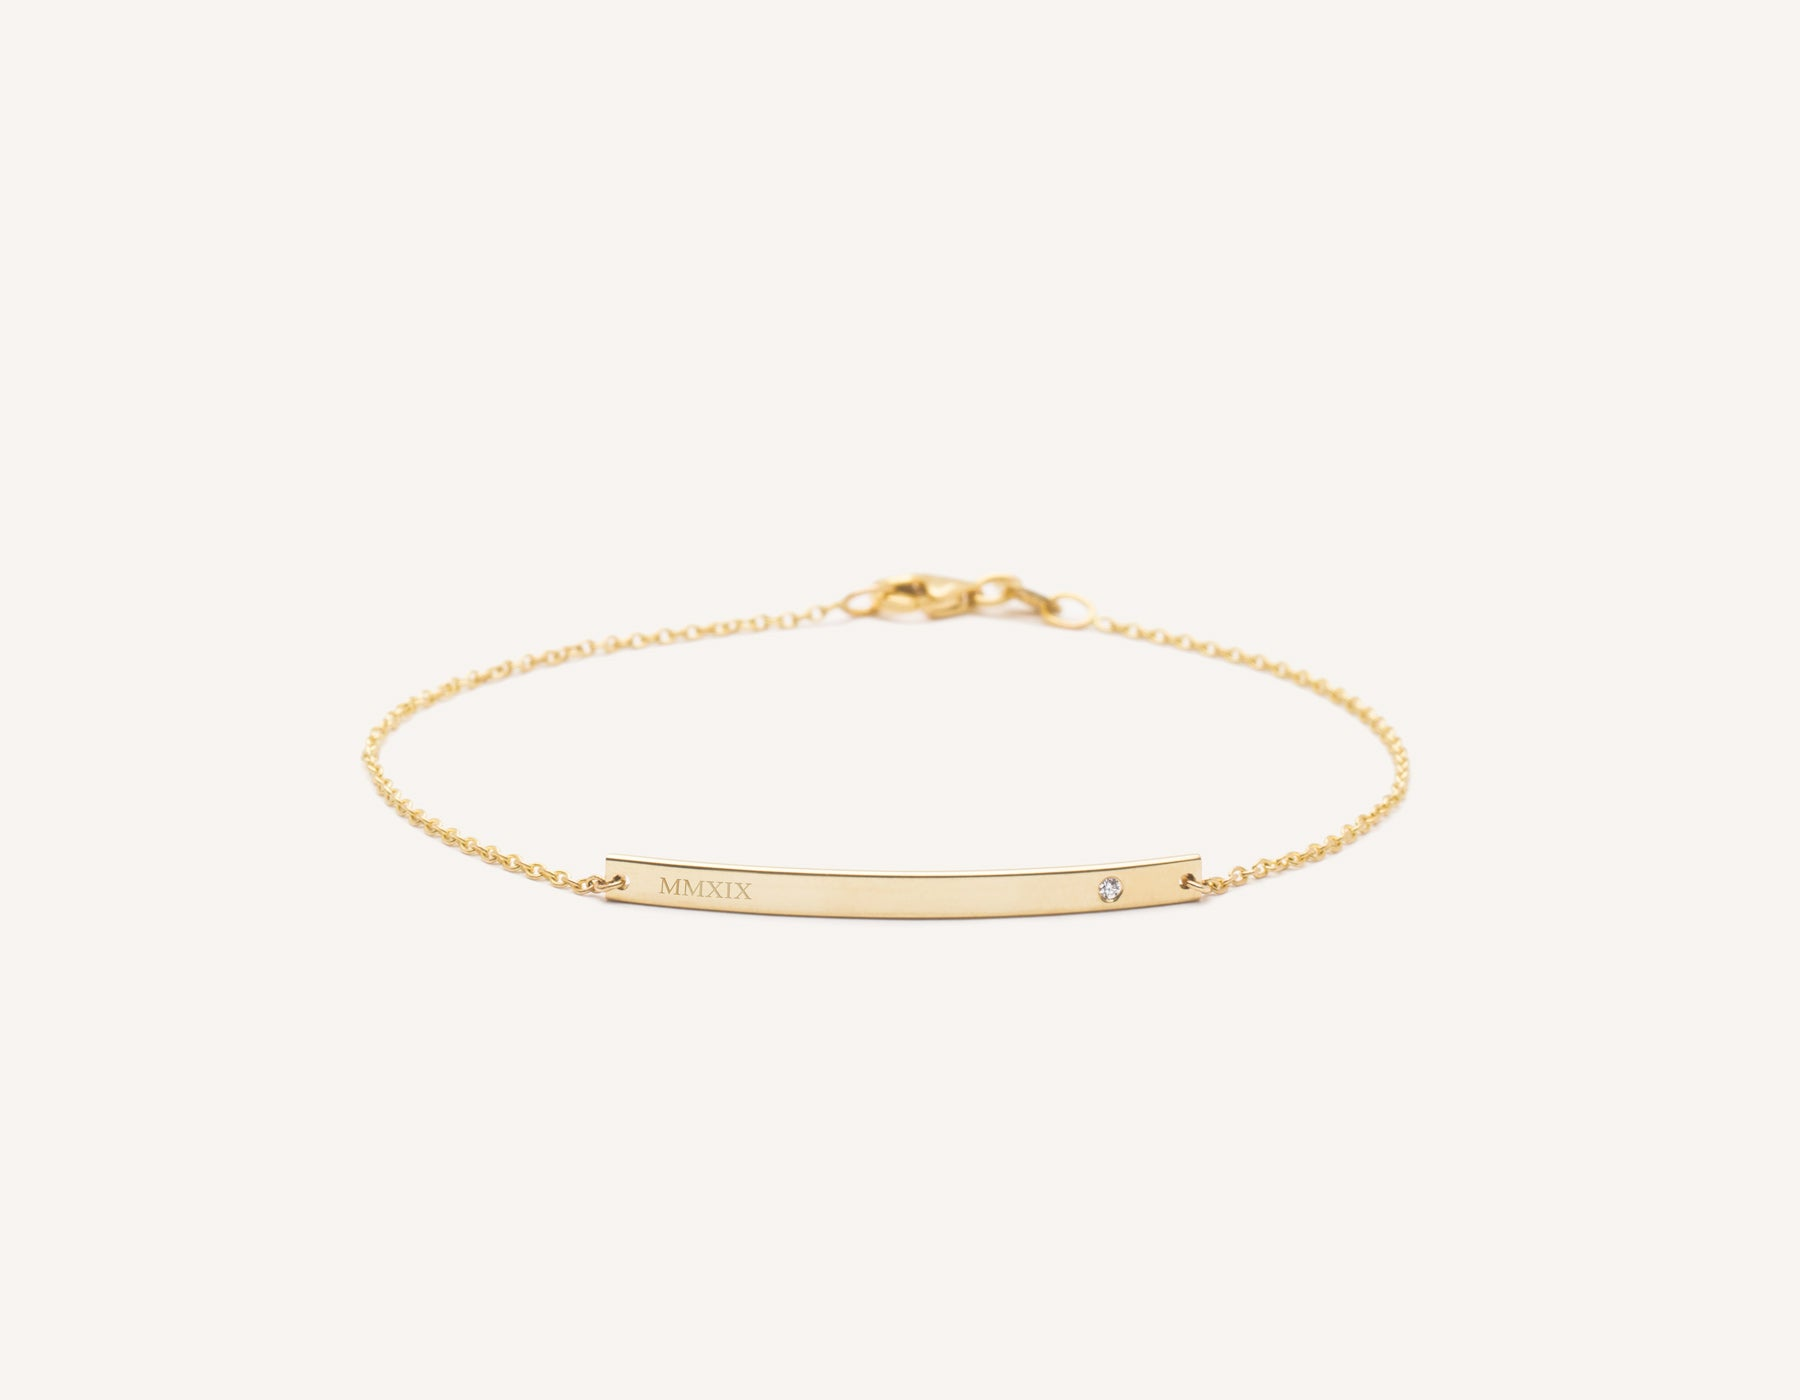 Engraved simple 14k Solid Gold Bar Bracelet with small diamond on minimalist chain with lobster clasp Vrai and Oro, 14K Yellow Gold